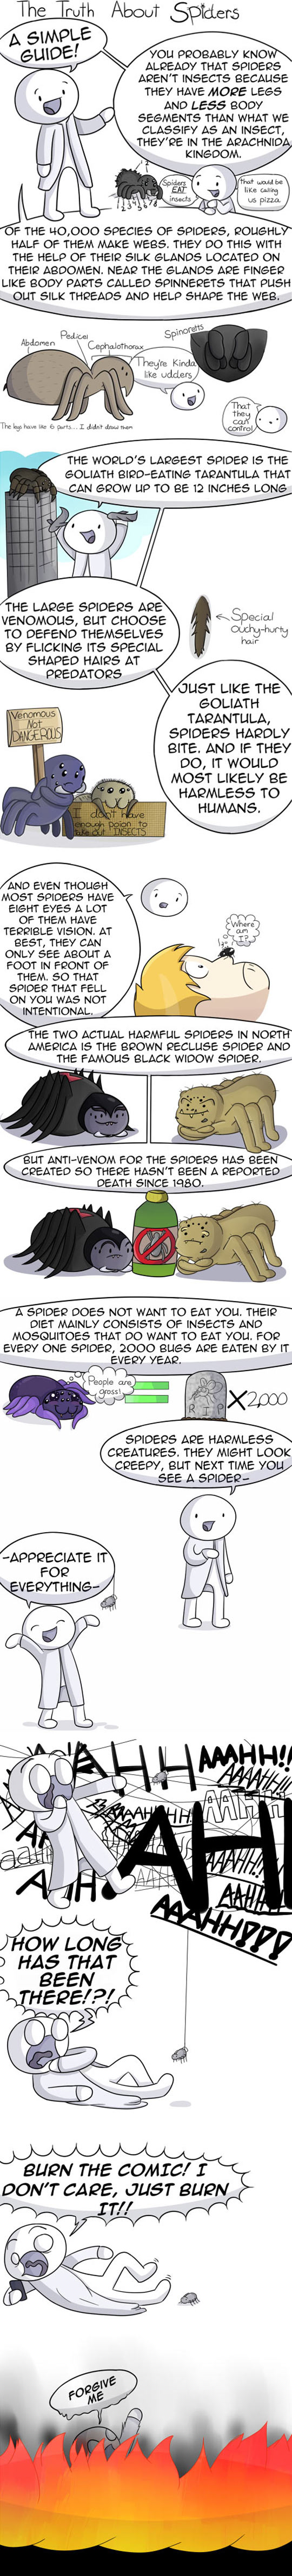 Simple Guide About Spiders